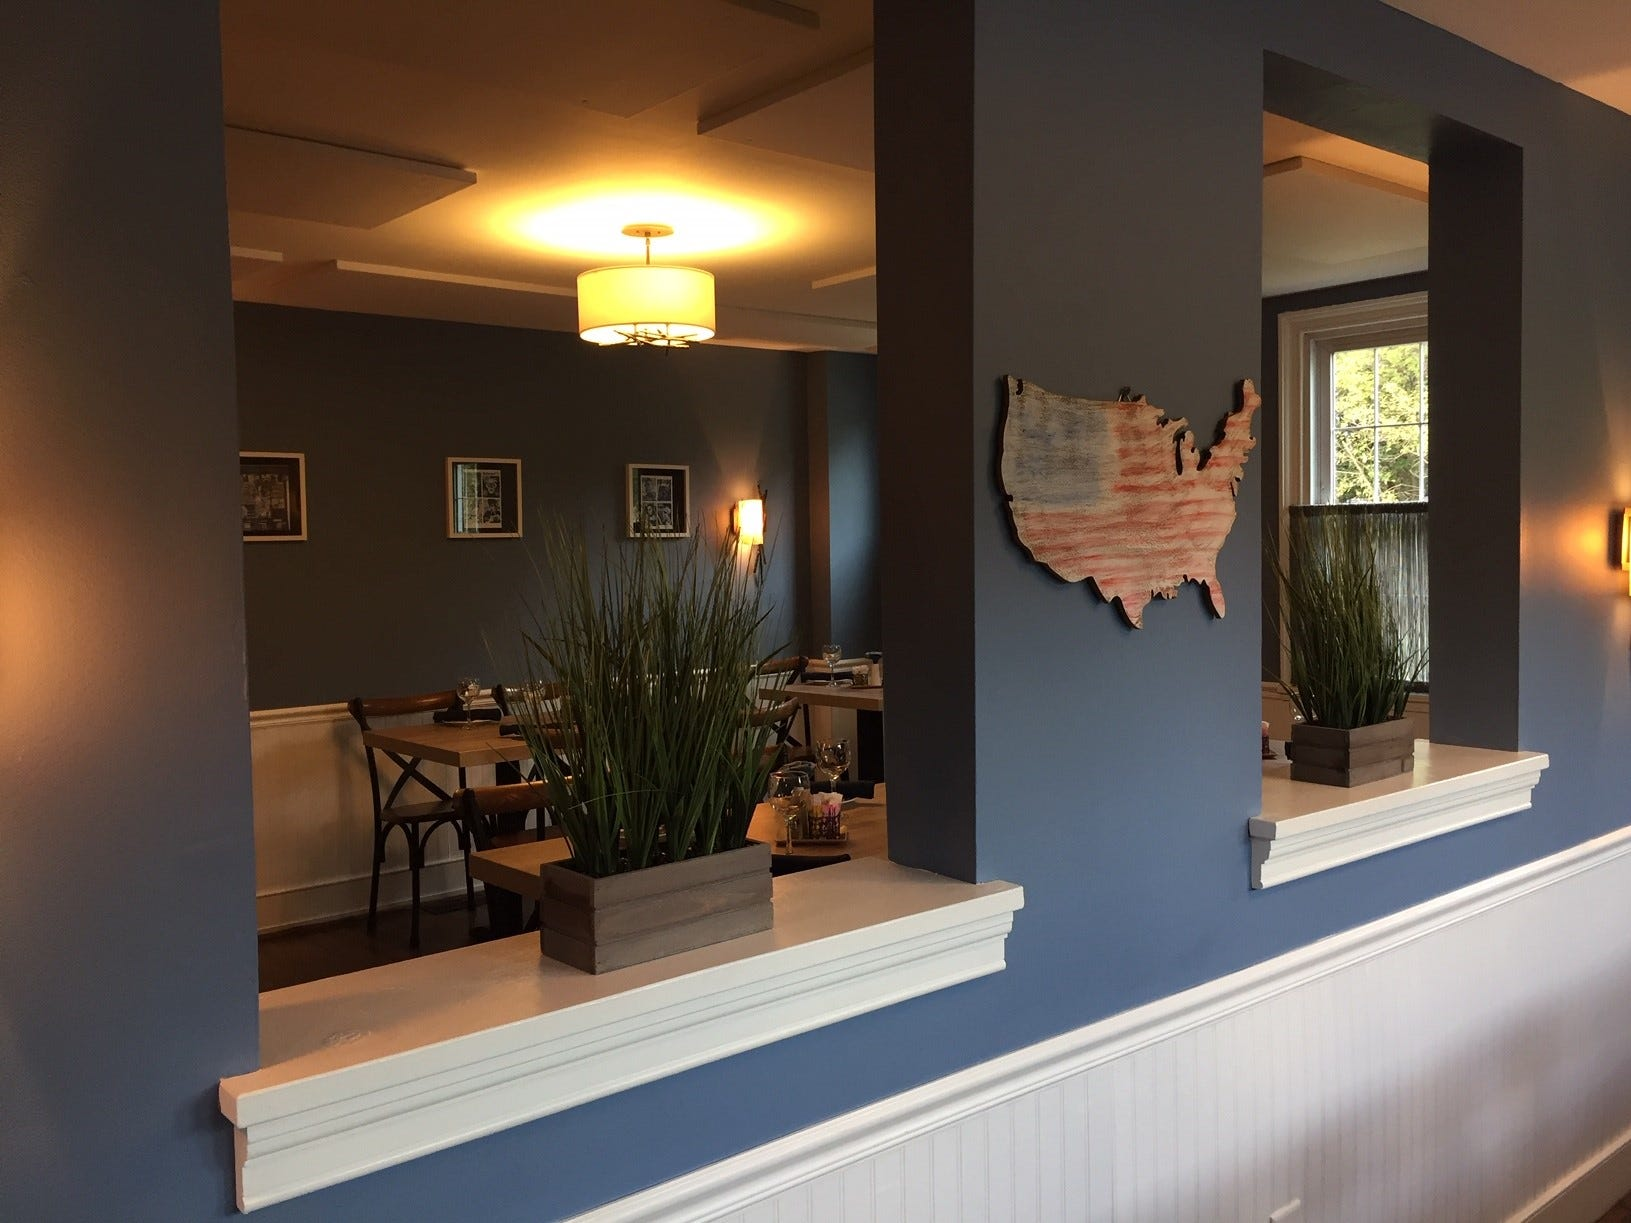 An interior window provides a look at a second dining area at Denim American Bistro in Cherry Hill.